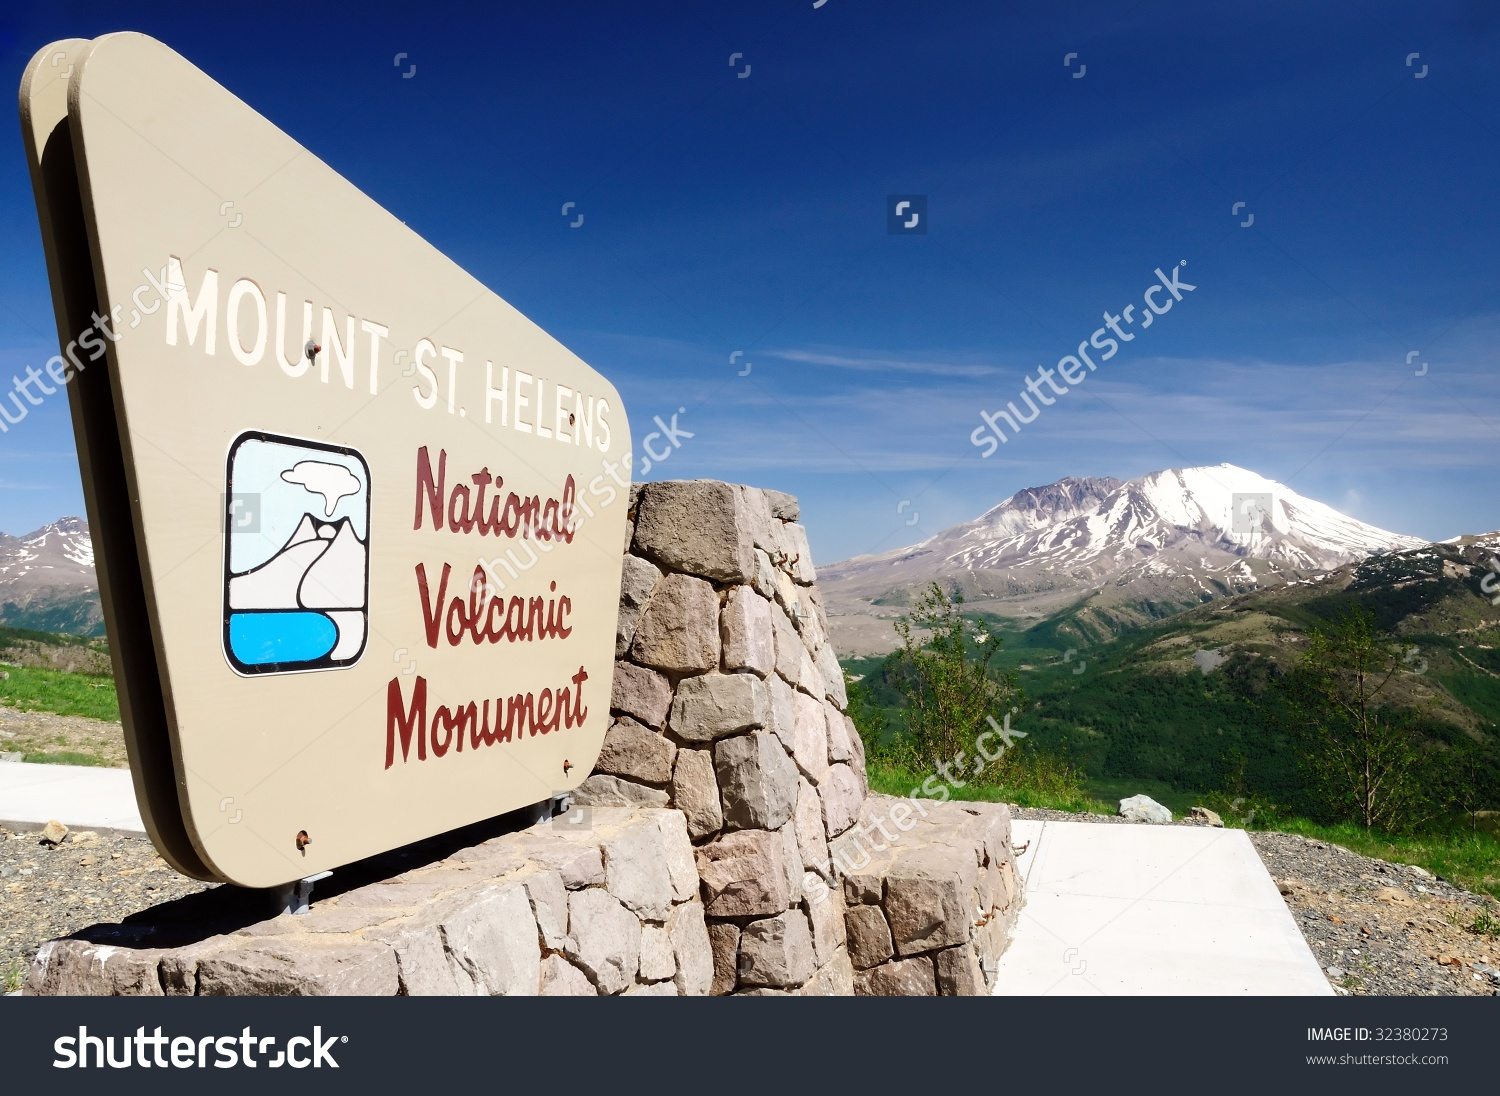 Mount St. Helens National Volcanic Monument Viewpoint Stock Photo.